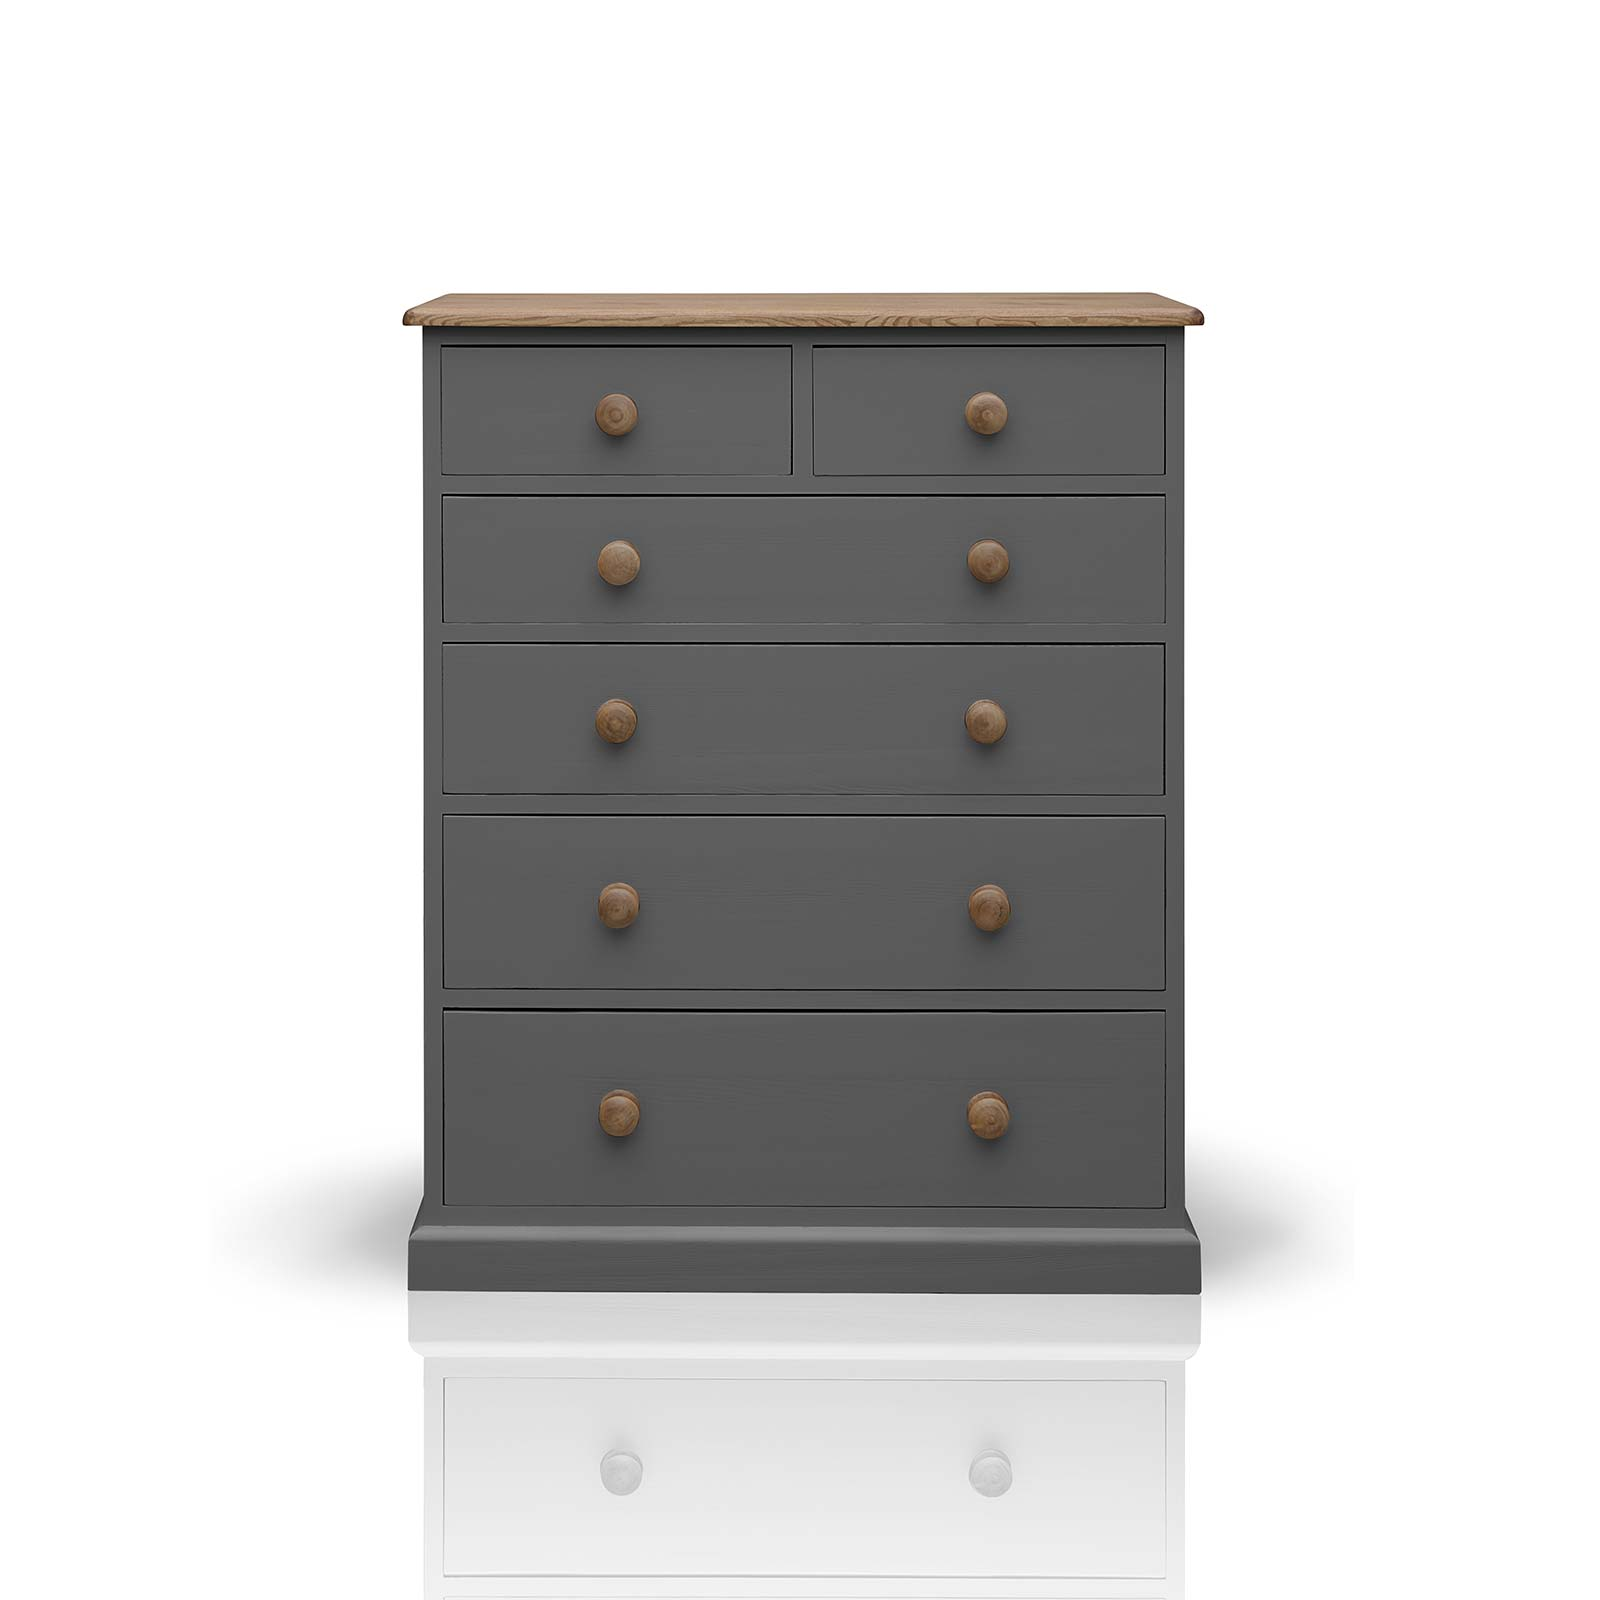 Beyond Home The Soho Painted Furniture Collection 2 over 4 Chest of Drawers in Grey